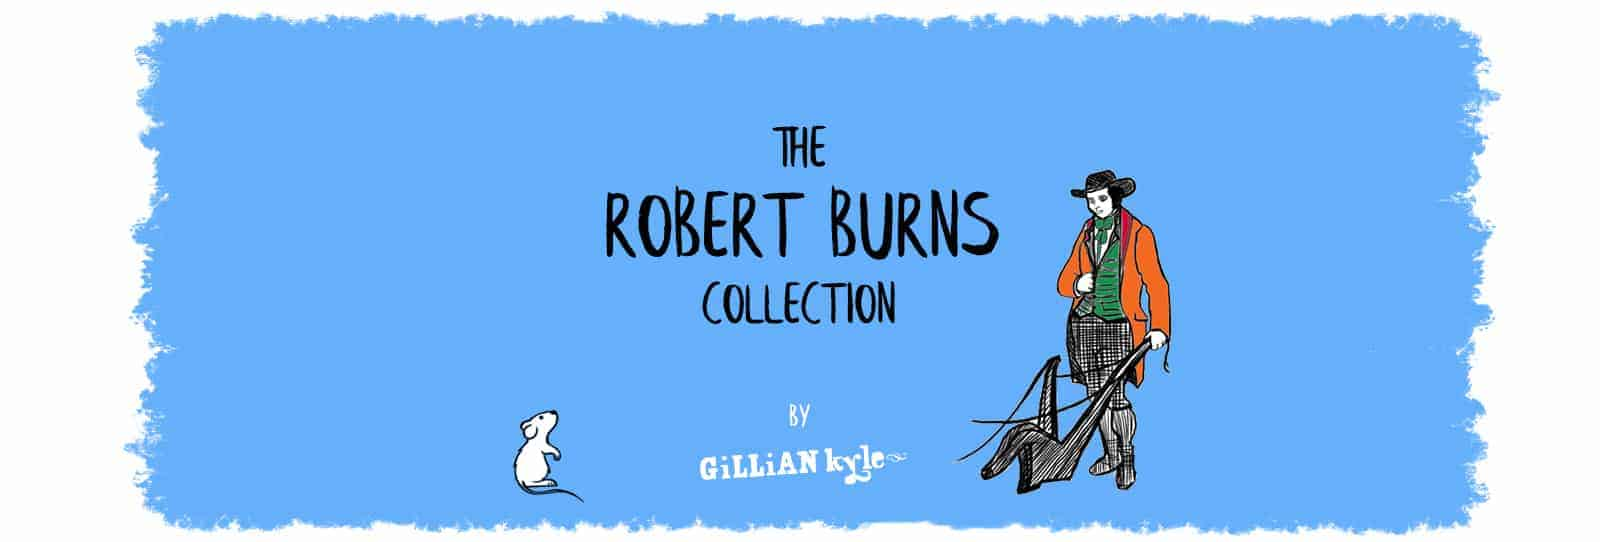 Robert Burns Collection of products and gifts by Gillian Kyle